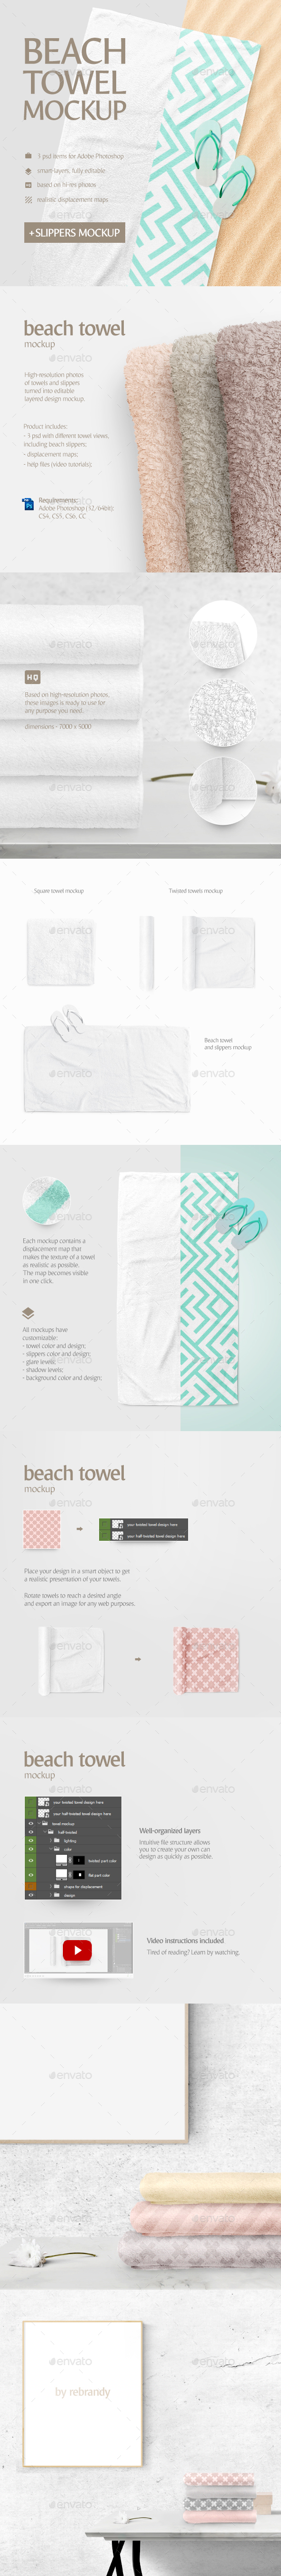 Beach Towel Mockup - Product Mock-Ups Graphics